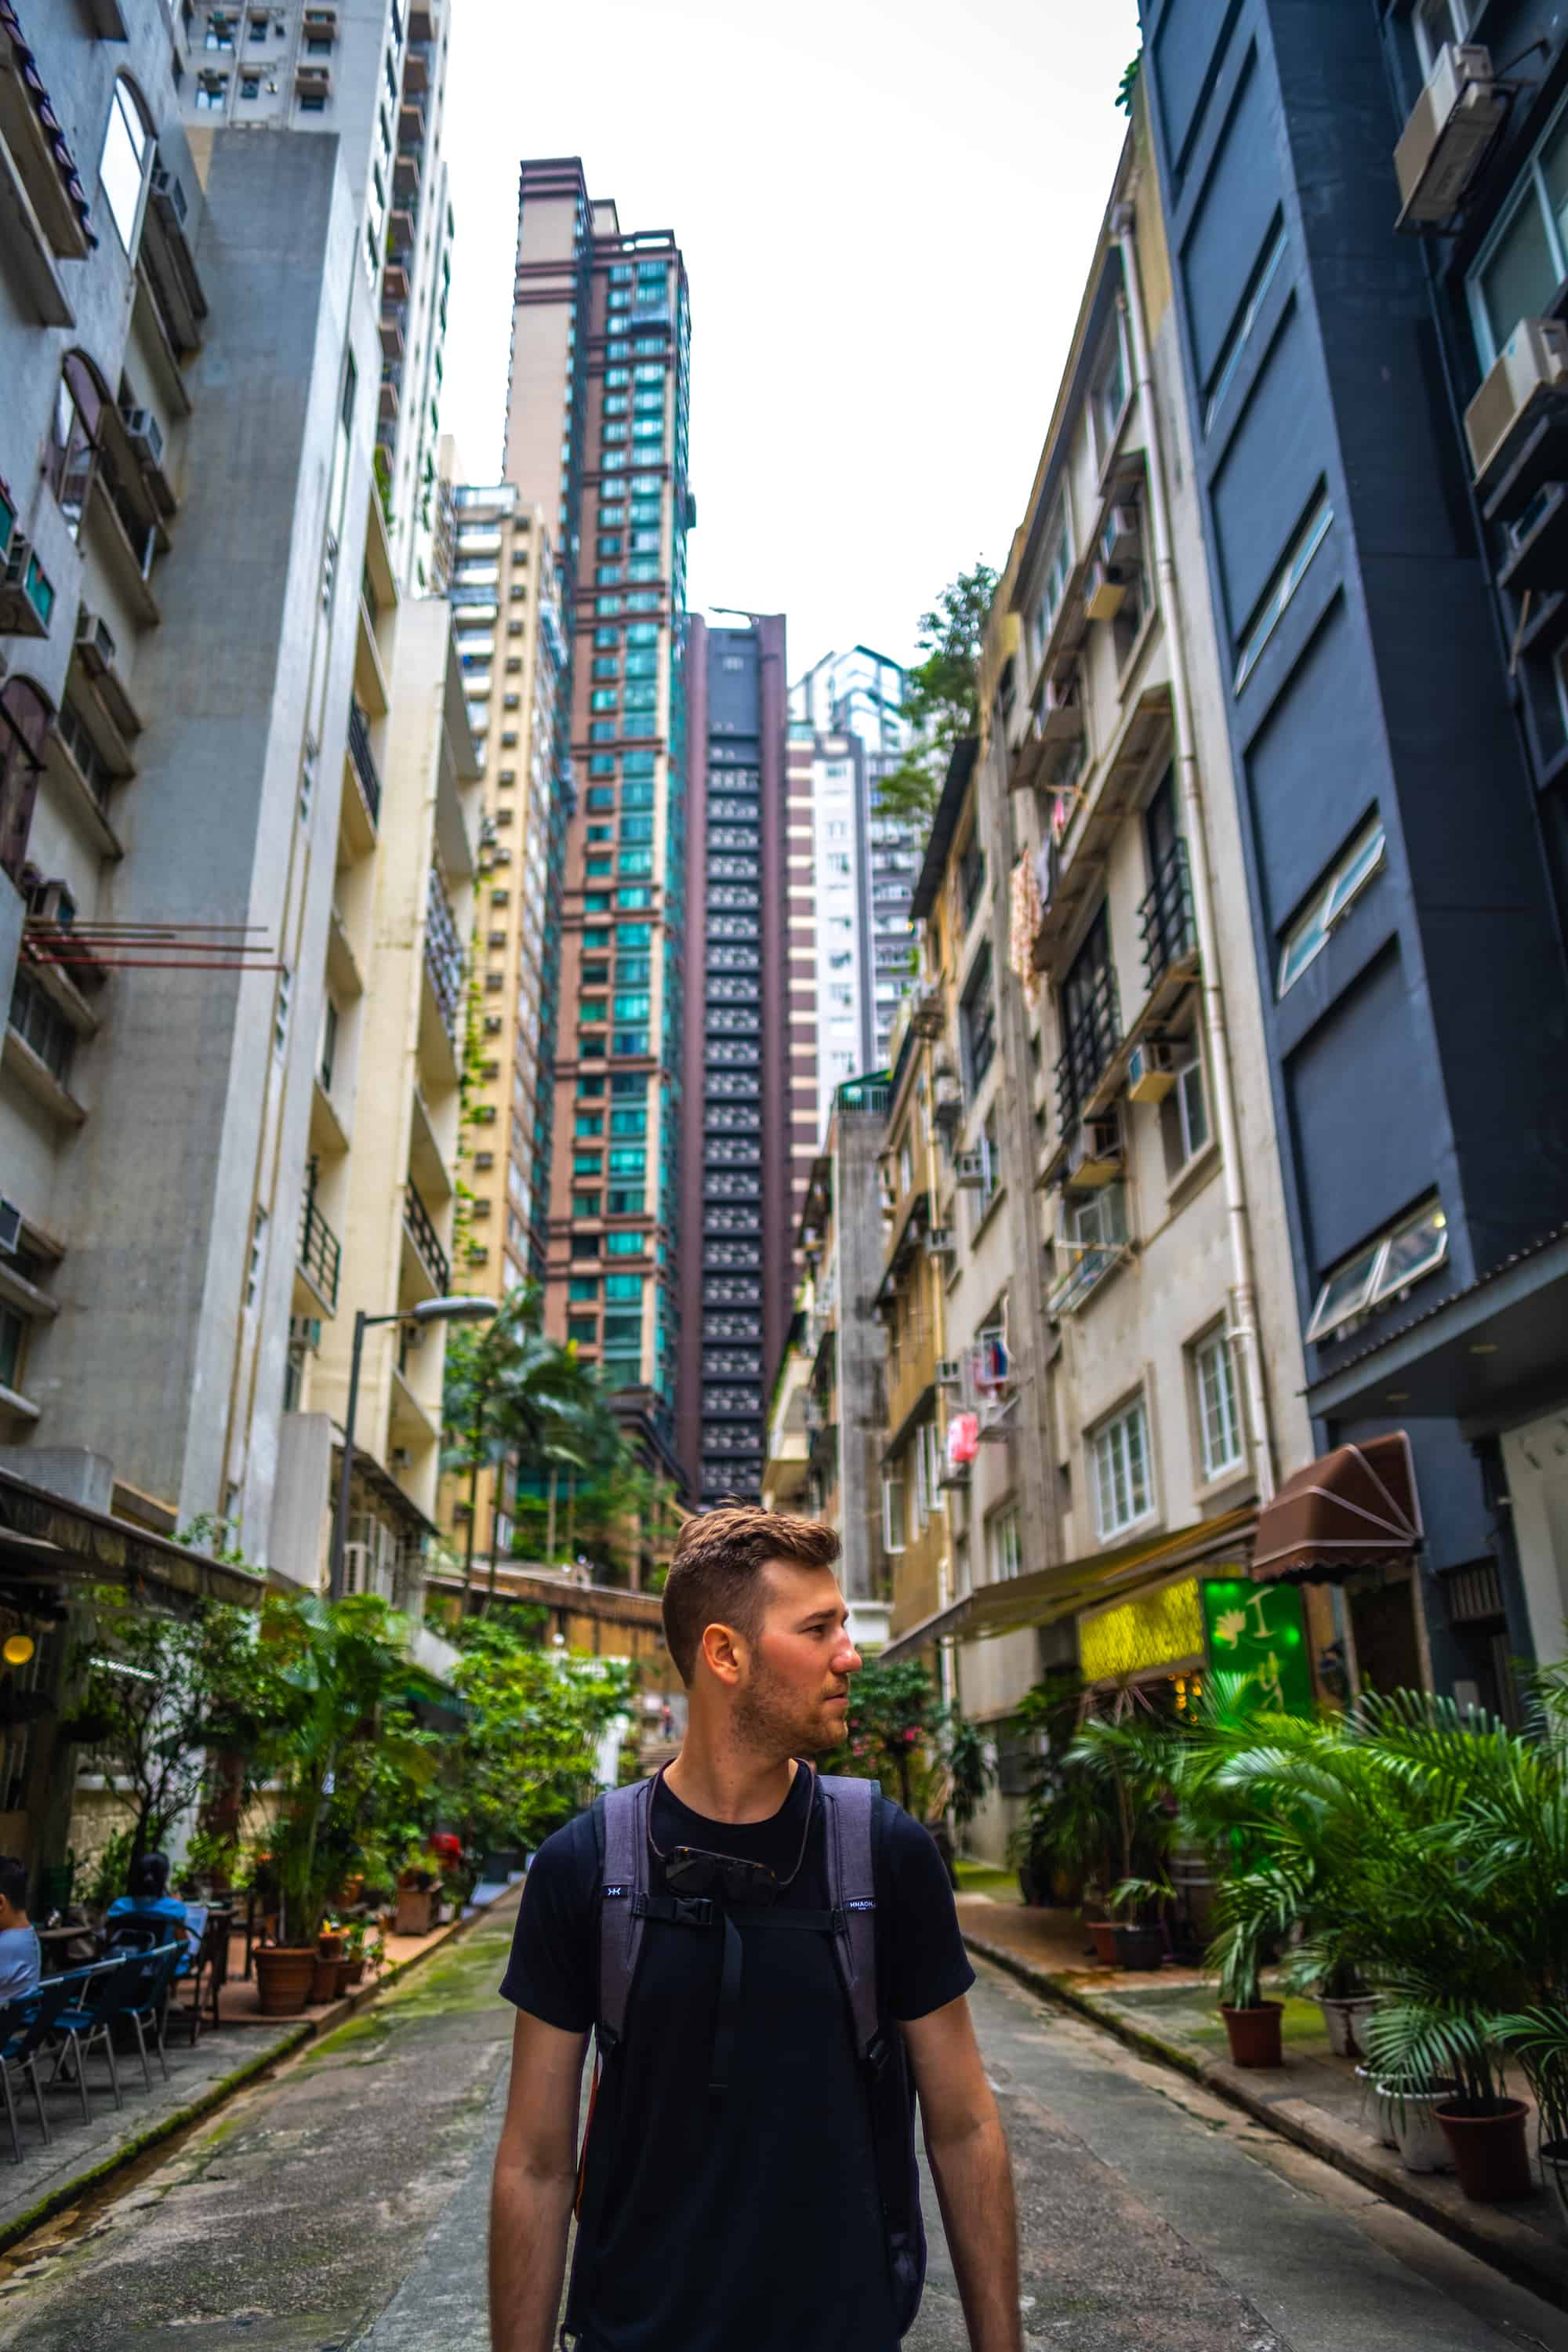 Cameron with the Knack Pack in Hong Kong